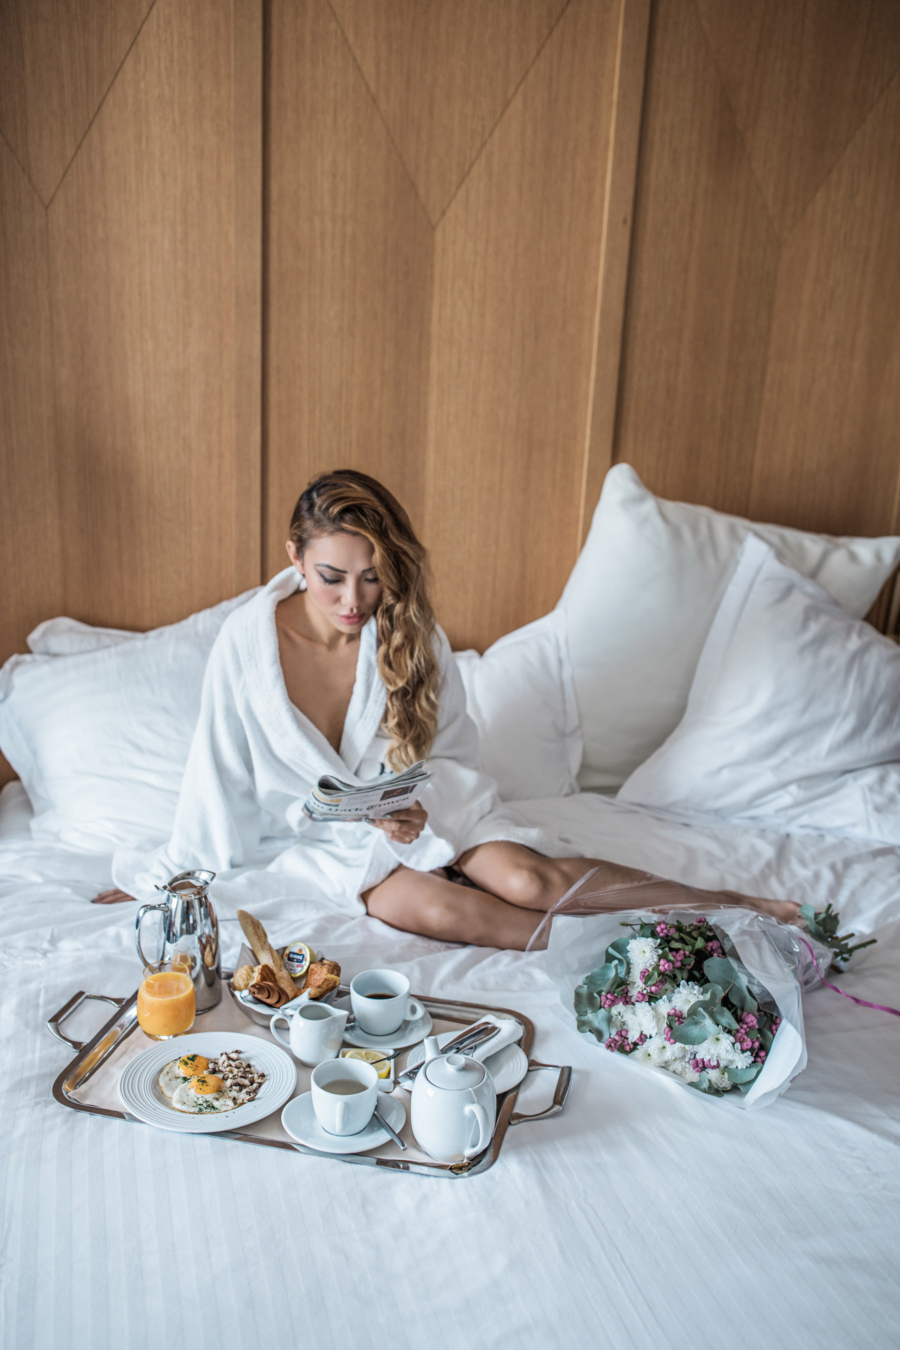 Breakfast in Bed, Hotel Vernet, Paris, France // NotJessFashion.com